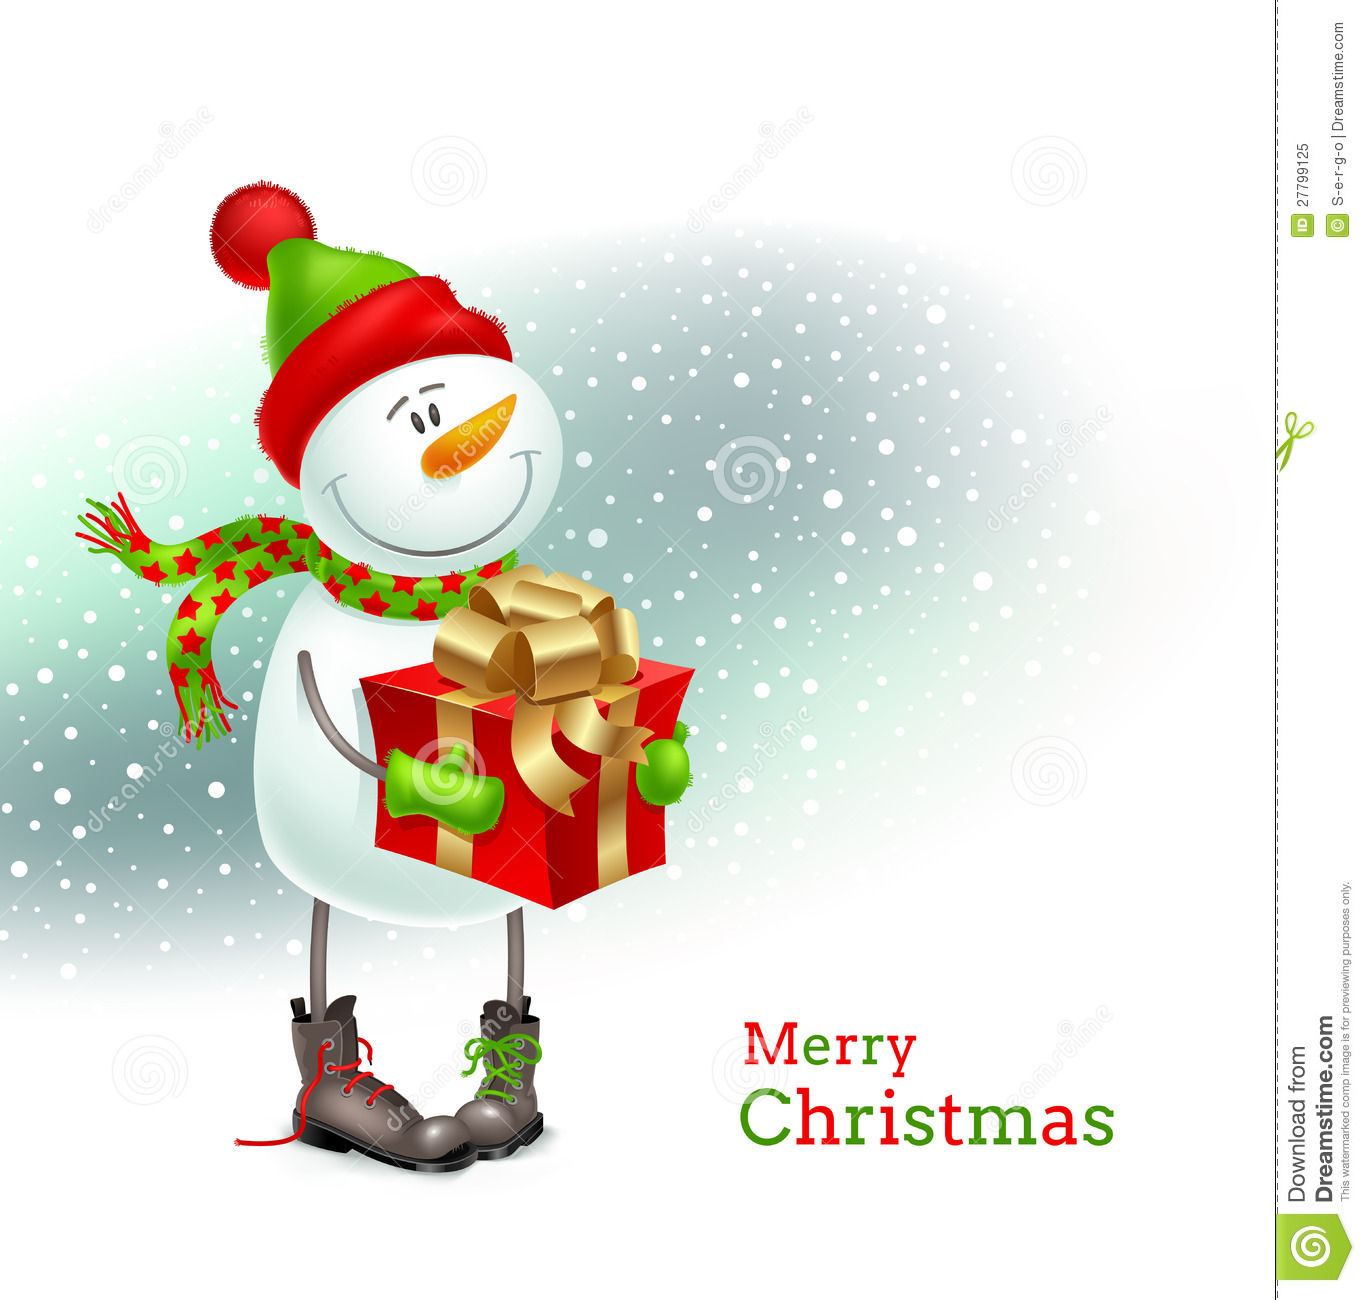 Smiling Snowman With Christmas Gift Royalty Free Stock Photo - Image: 27799125